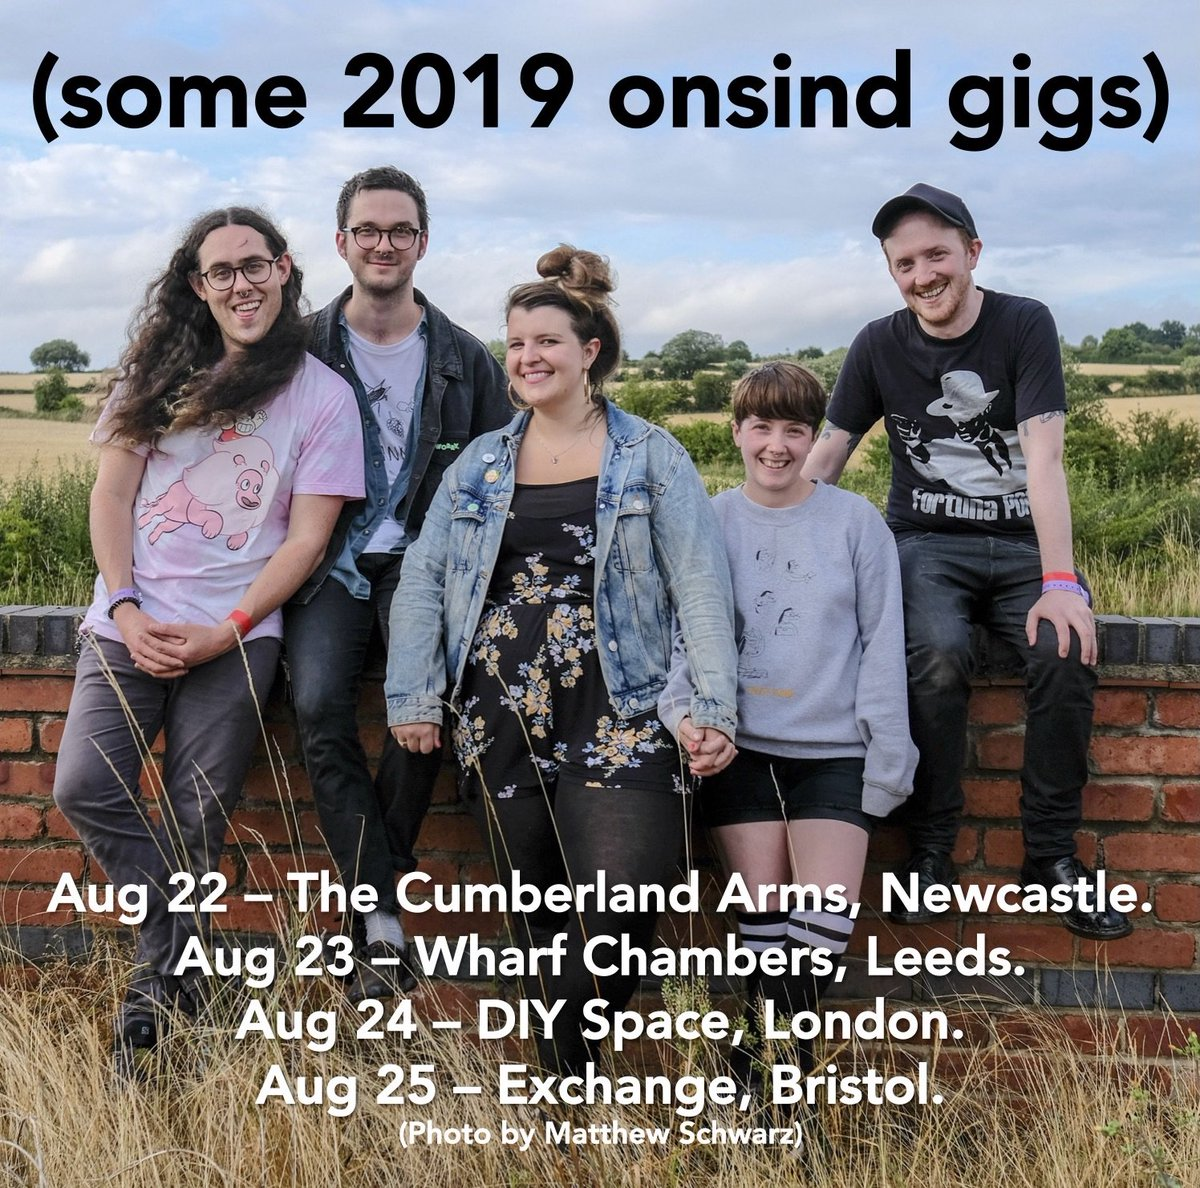 Were playing some gigs in August. Will you consider coming to one of them? Thats the purpose of this tweet essentially. To ask you that. Please consider it.